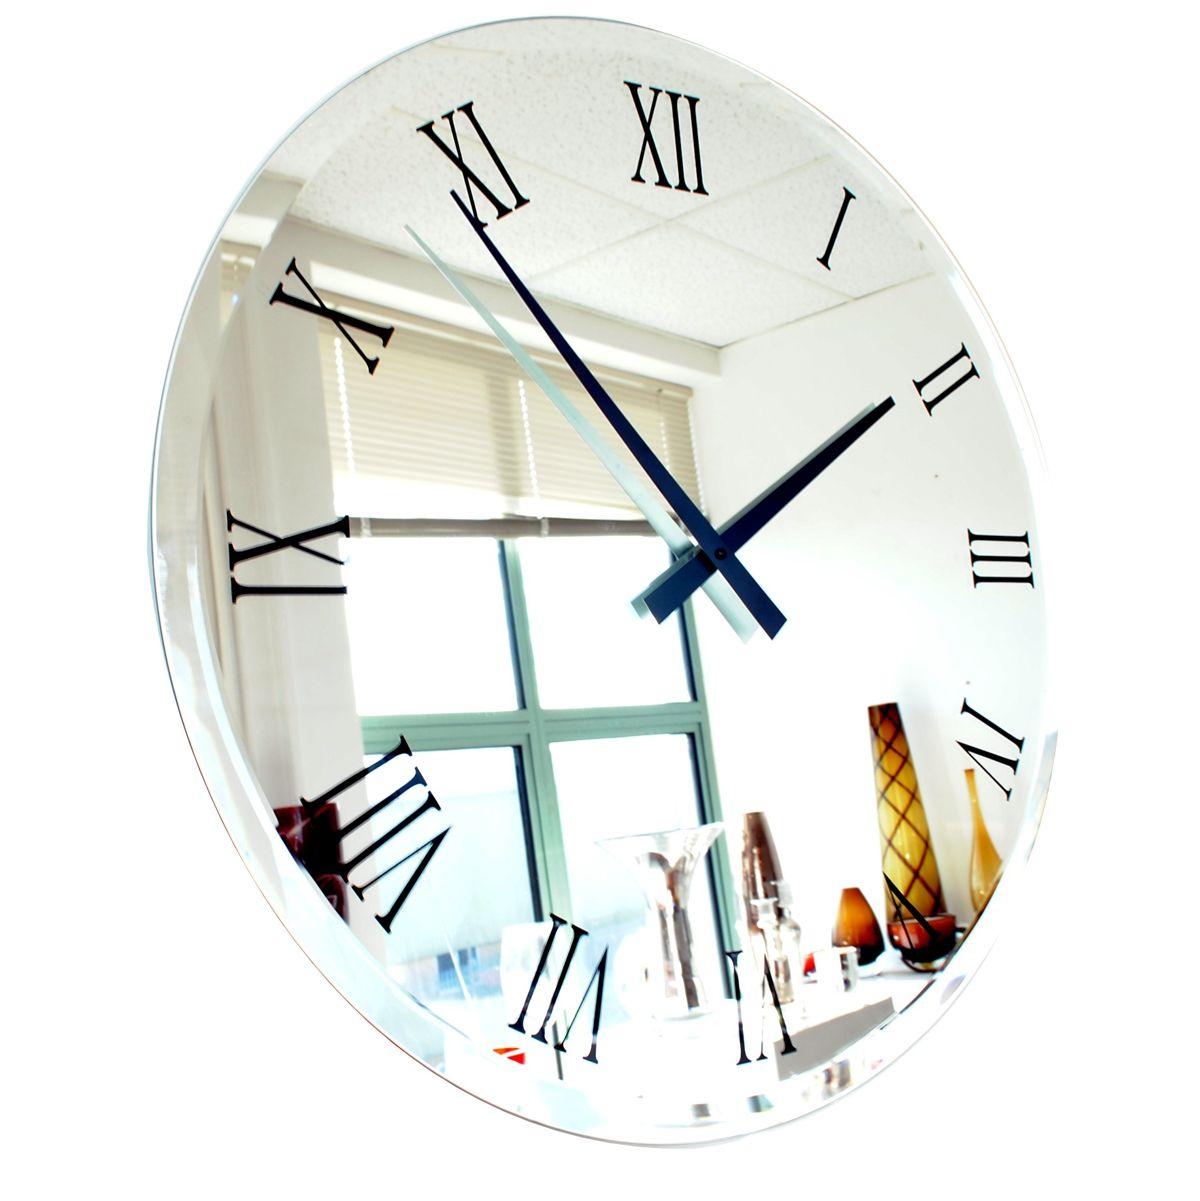 Extra large big bevelled roman mirror wall clock buy online uk extra large big bevelled roman mirror wall clock buy online uk amipublicfo Image collections